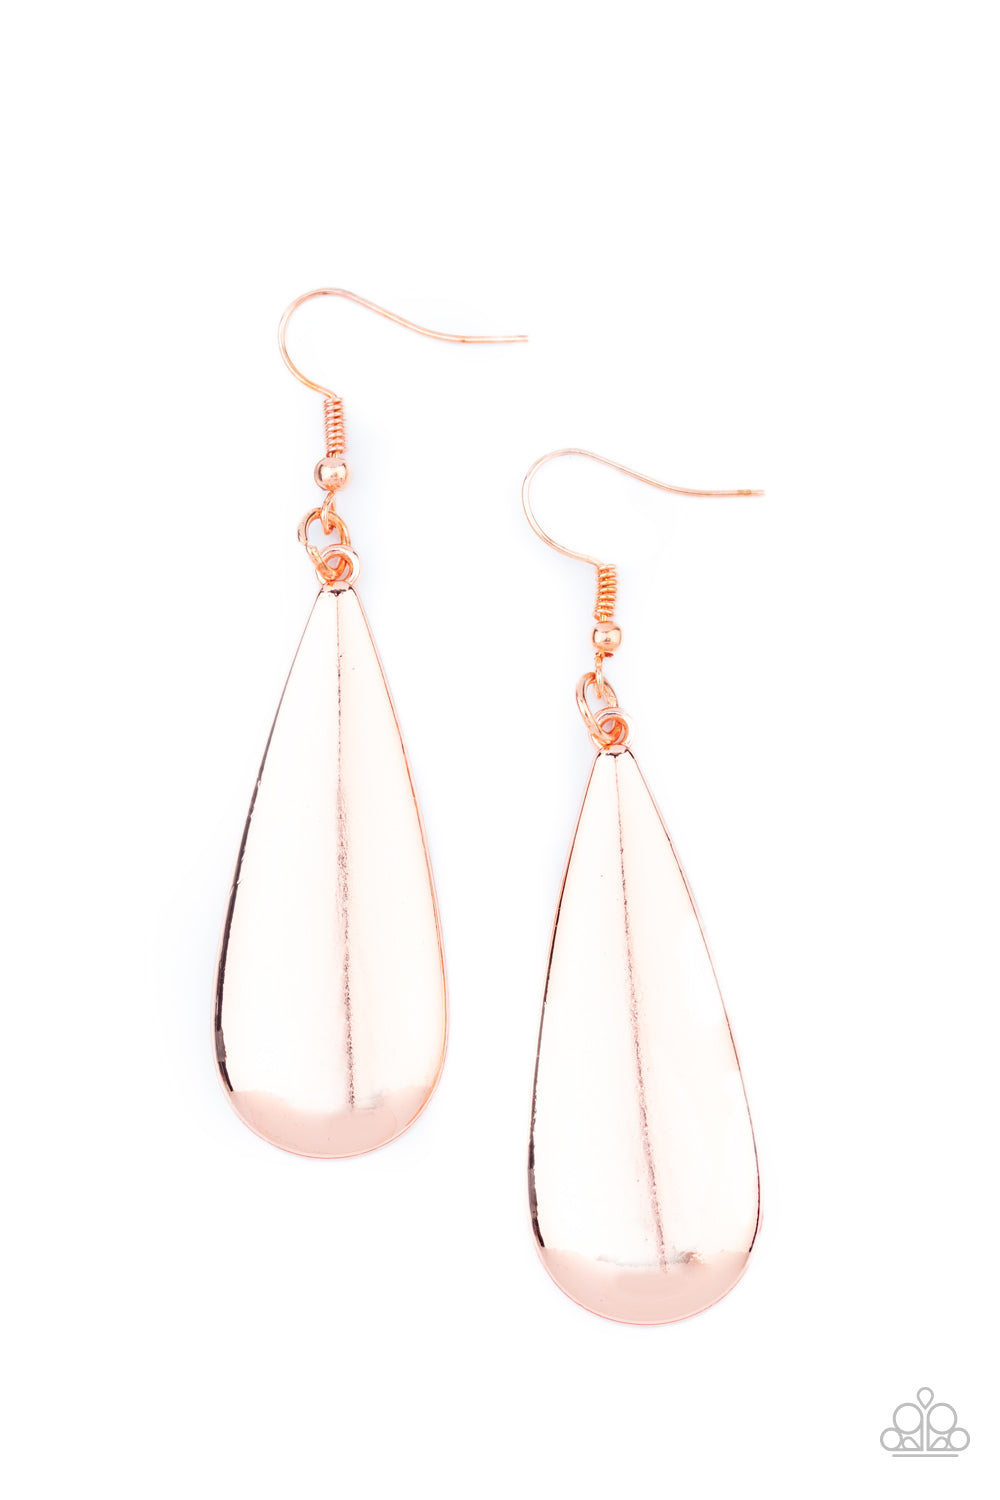 five-dollar-jewelry-the-drop-off-copper-earrings-paparazzi-accessories